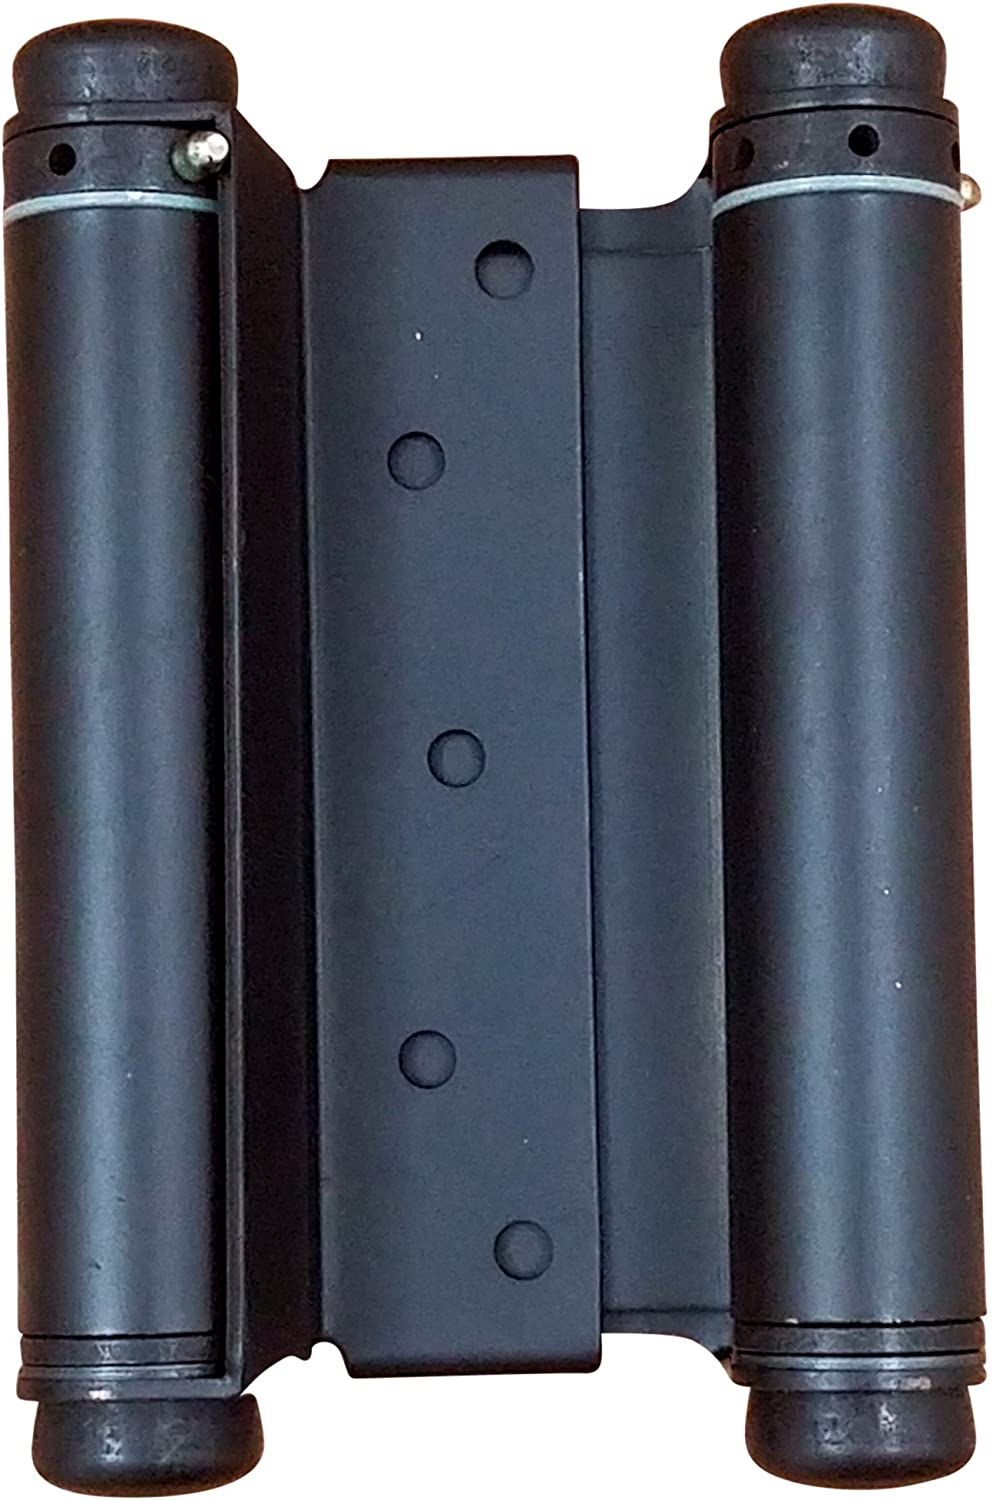 Sold Individually Hinge Outlet Double Action Spring Hinge 5 Inch Oil Rubbed Bronze for Cafe Saloon Doors